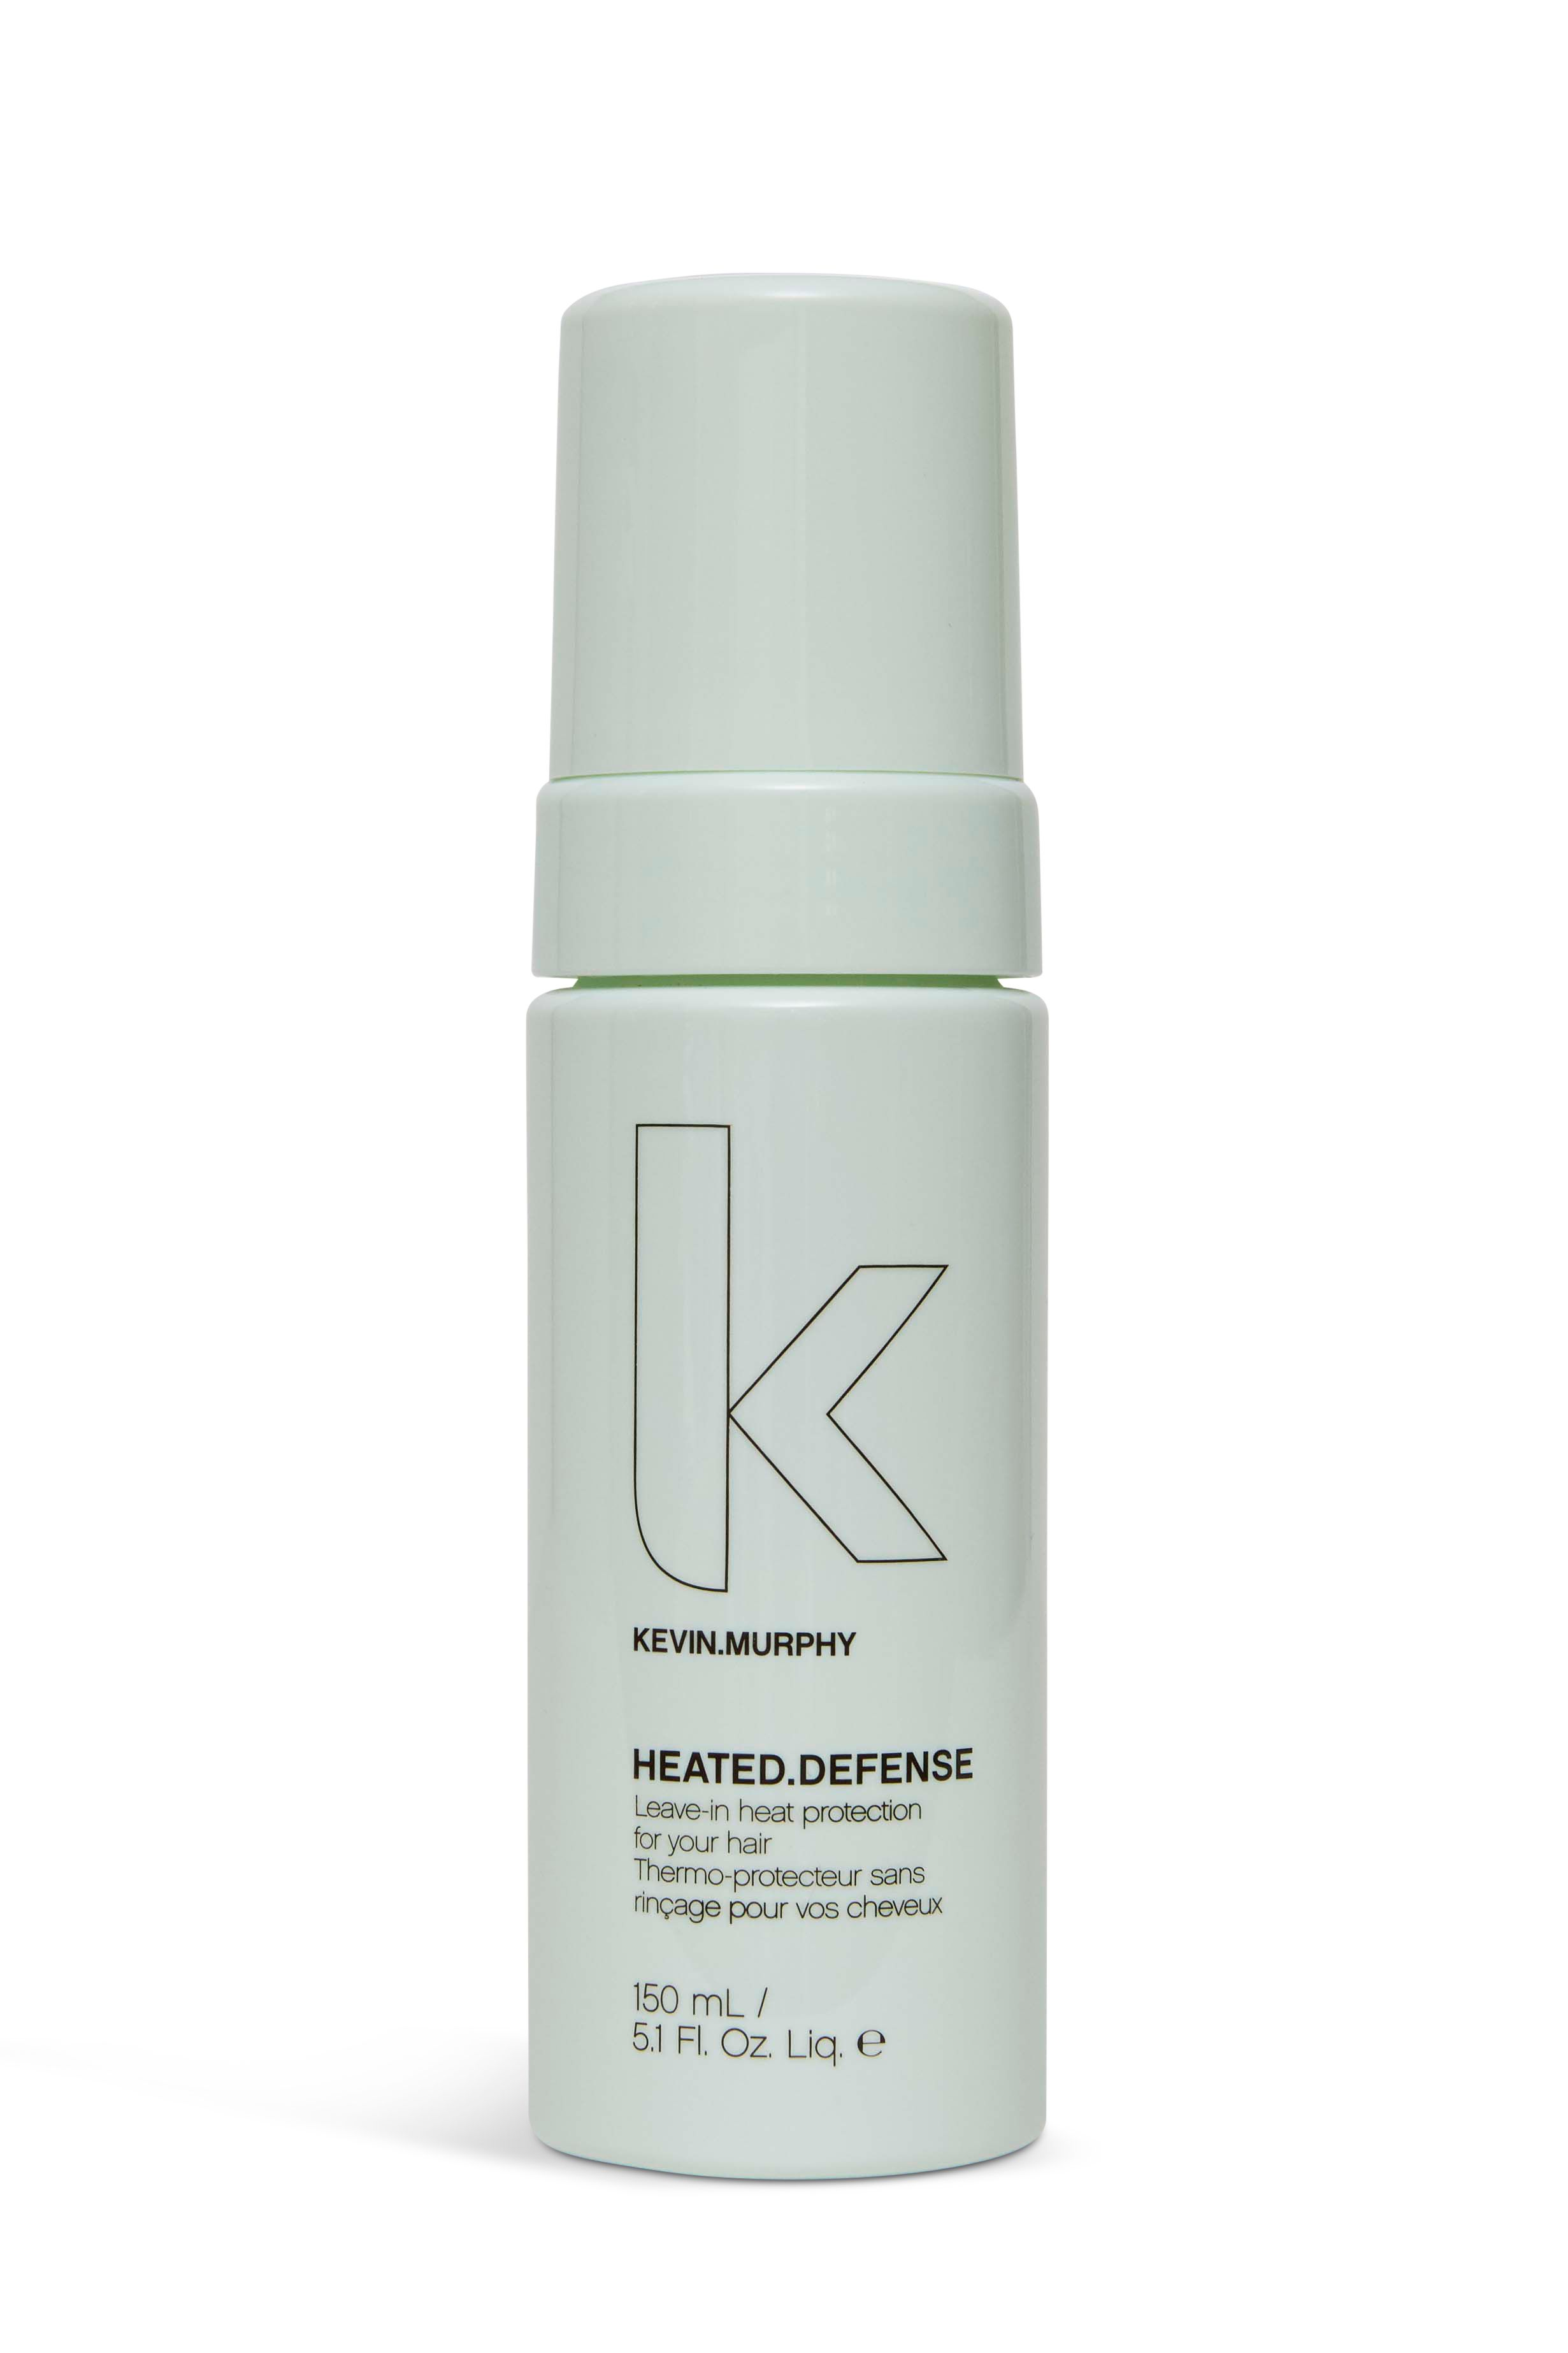 Blissim : KEVIN.MURPHY - Thermo-protecteur sans rinçage HEATED.DEFENSE - Thermo-protecteur sans rinçage HEATED.DEFENSE